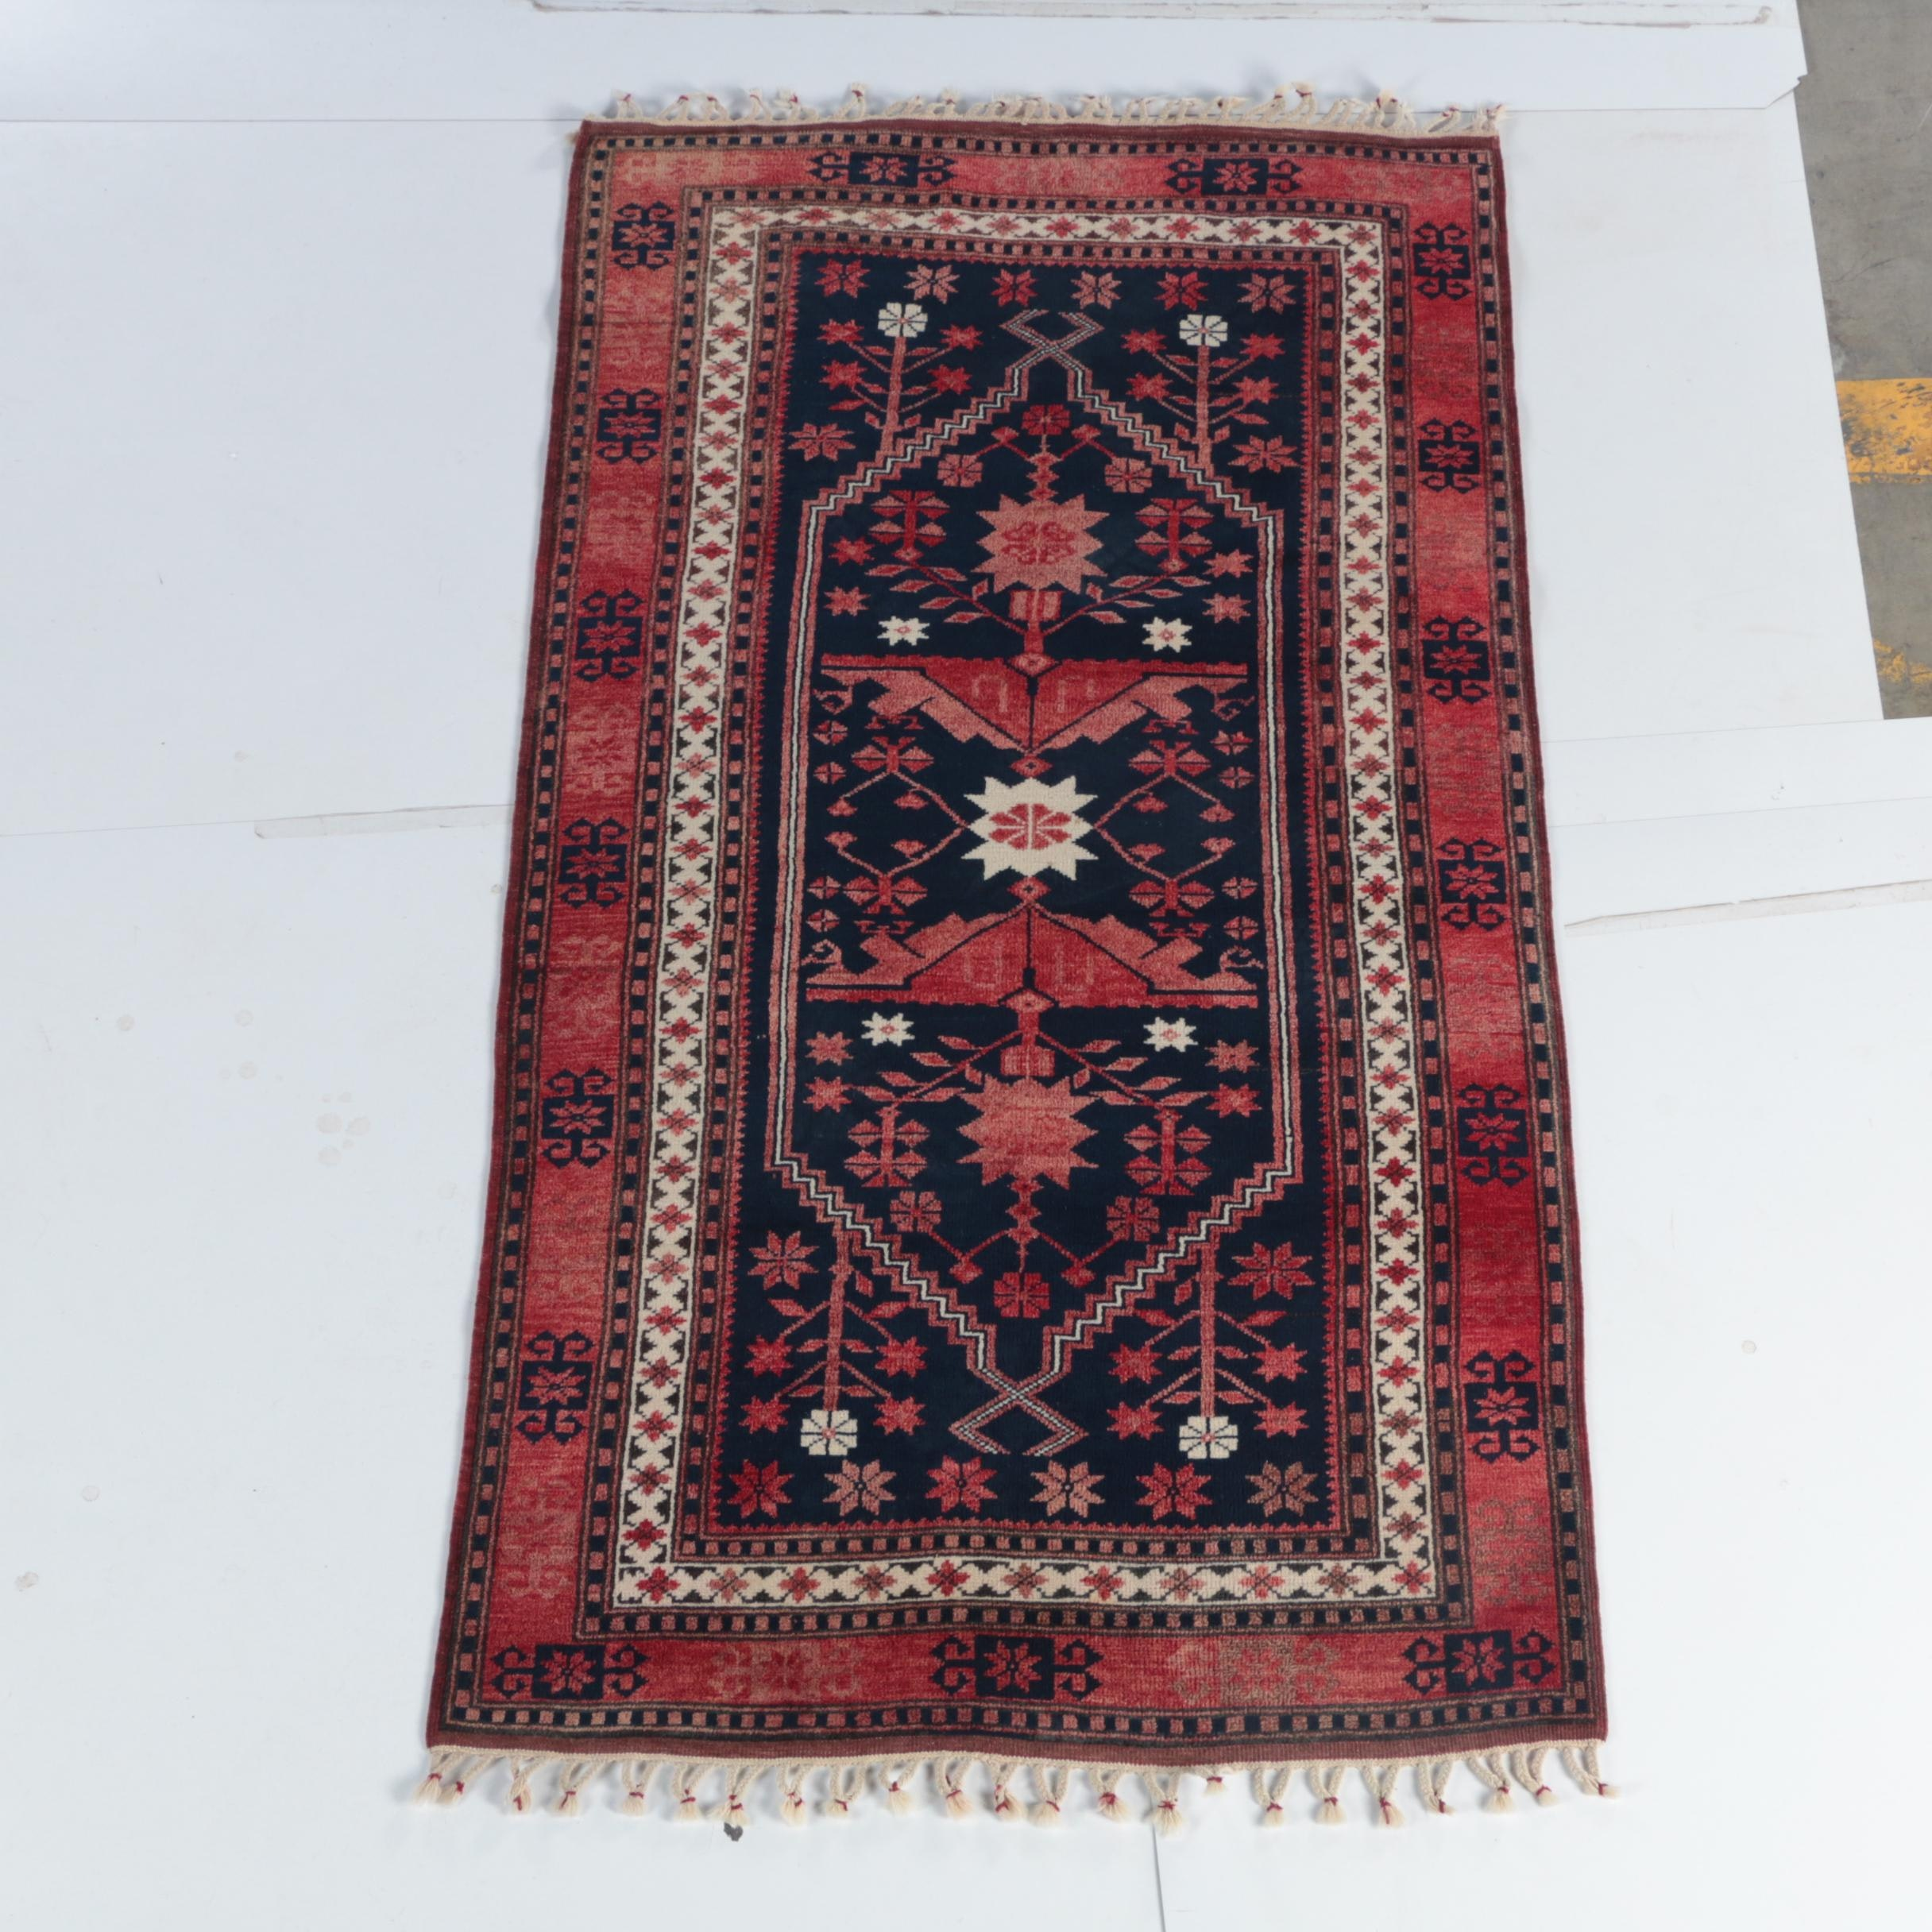 Hand-Knotted Turkish Yağcıbedir Wool Area Rug